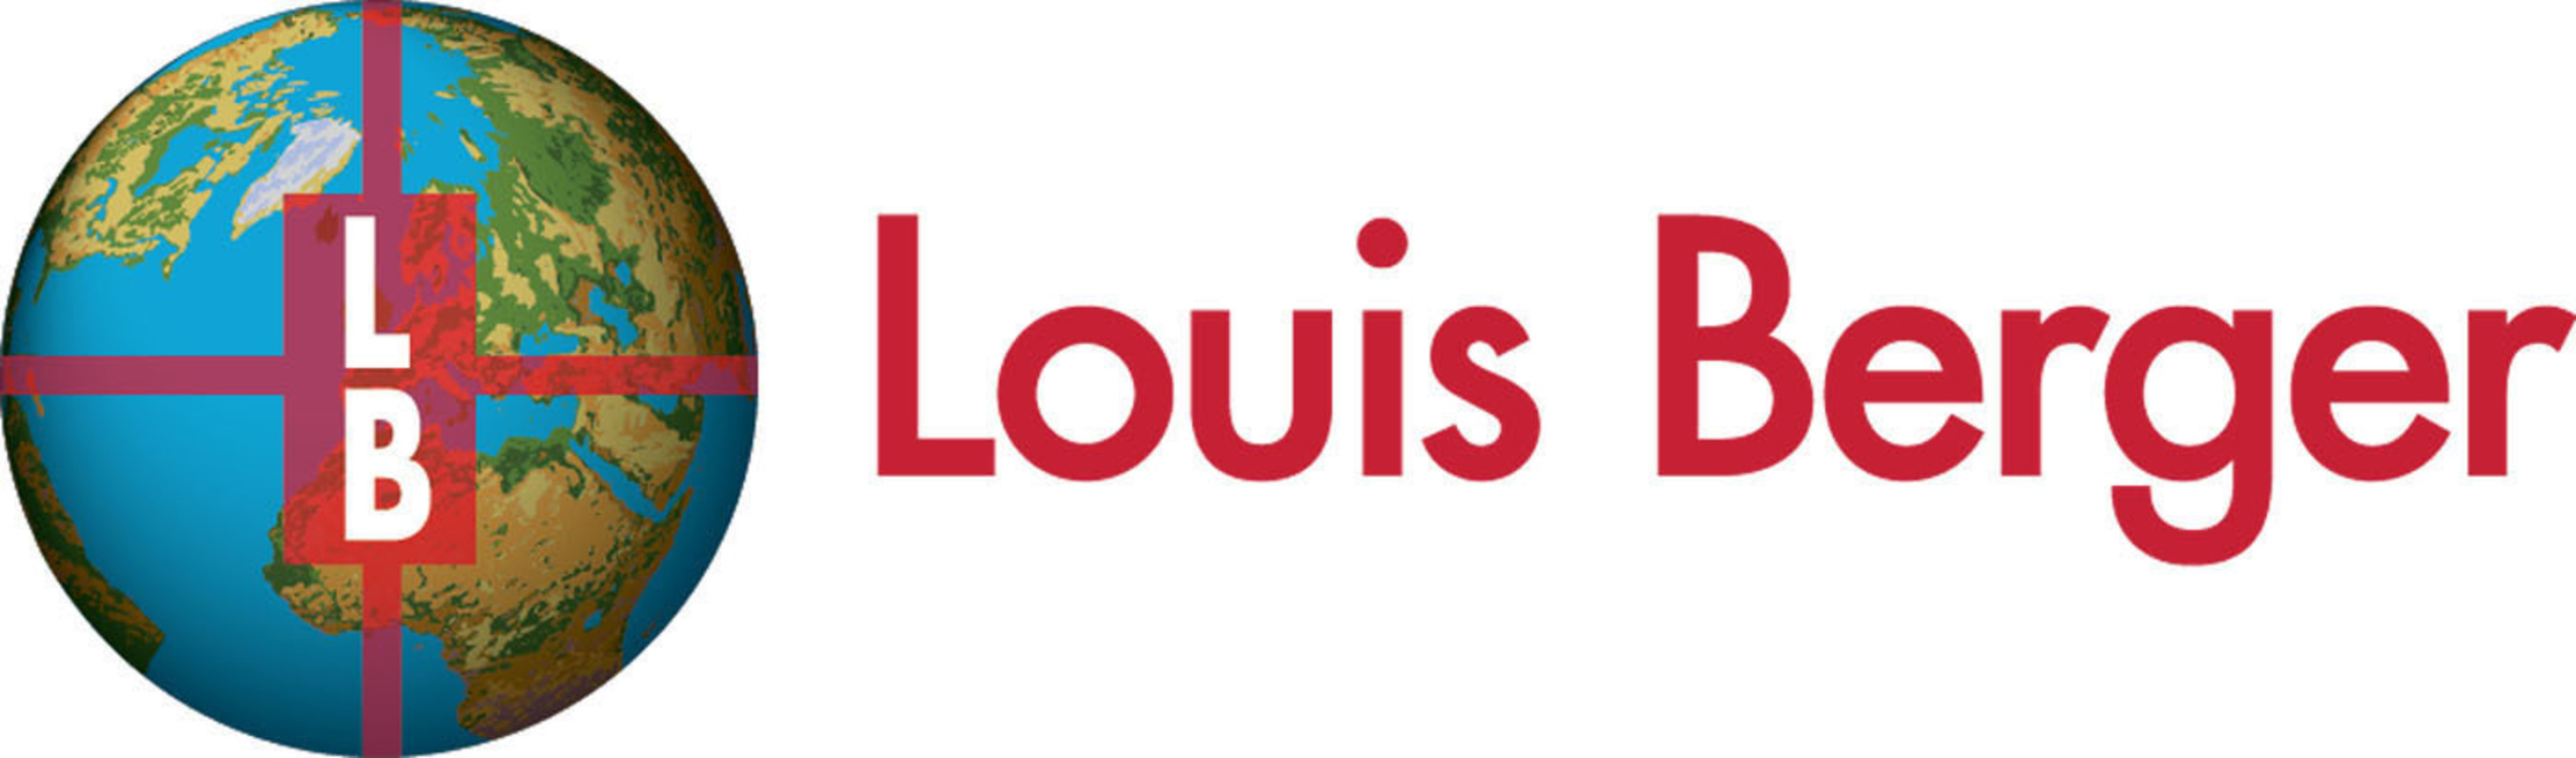 Louis Berger Logo.